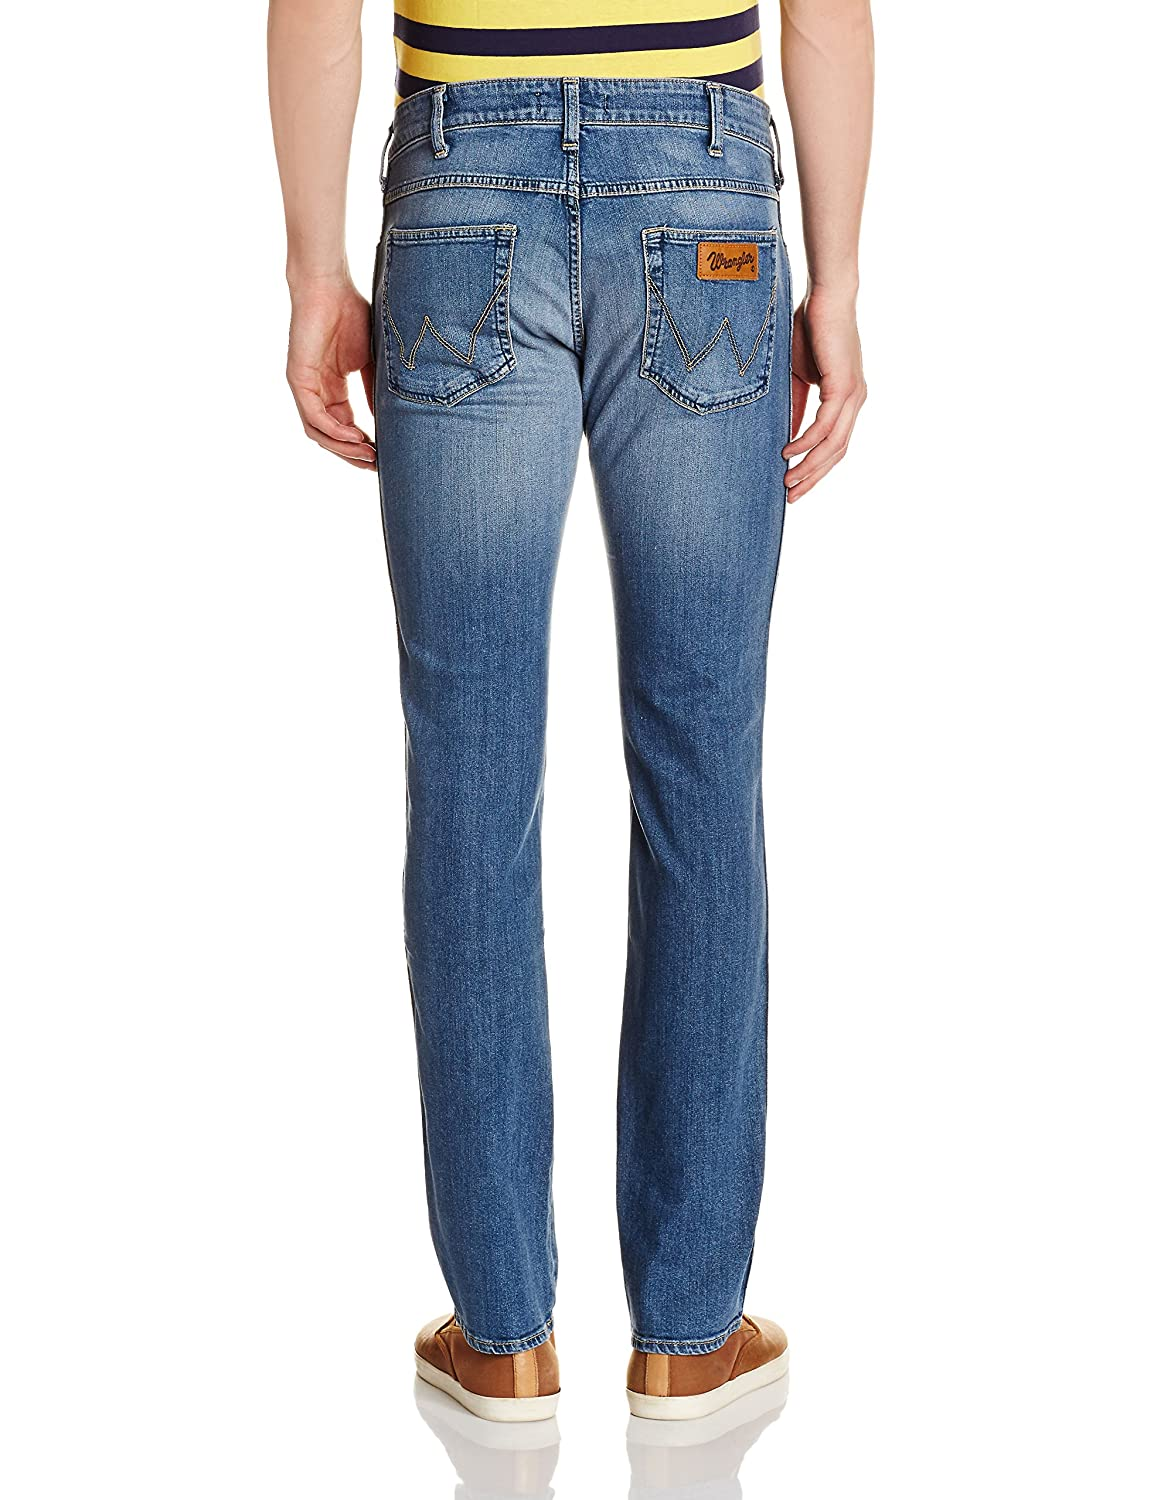 83e3cf42 Wrangler Men's Cotton Jeans (8907222956912_W24119W2283G_40W x33L_Light  wash): Amazon.in: Clothing & Accessories